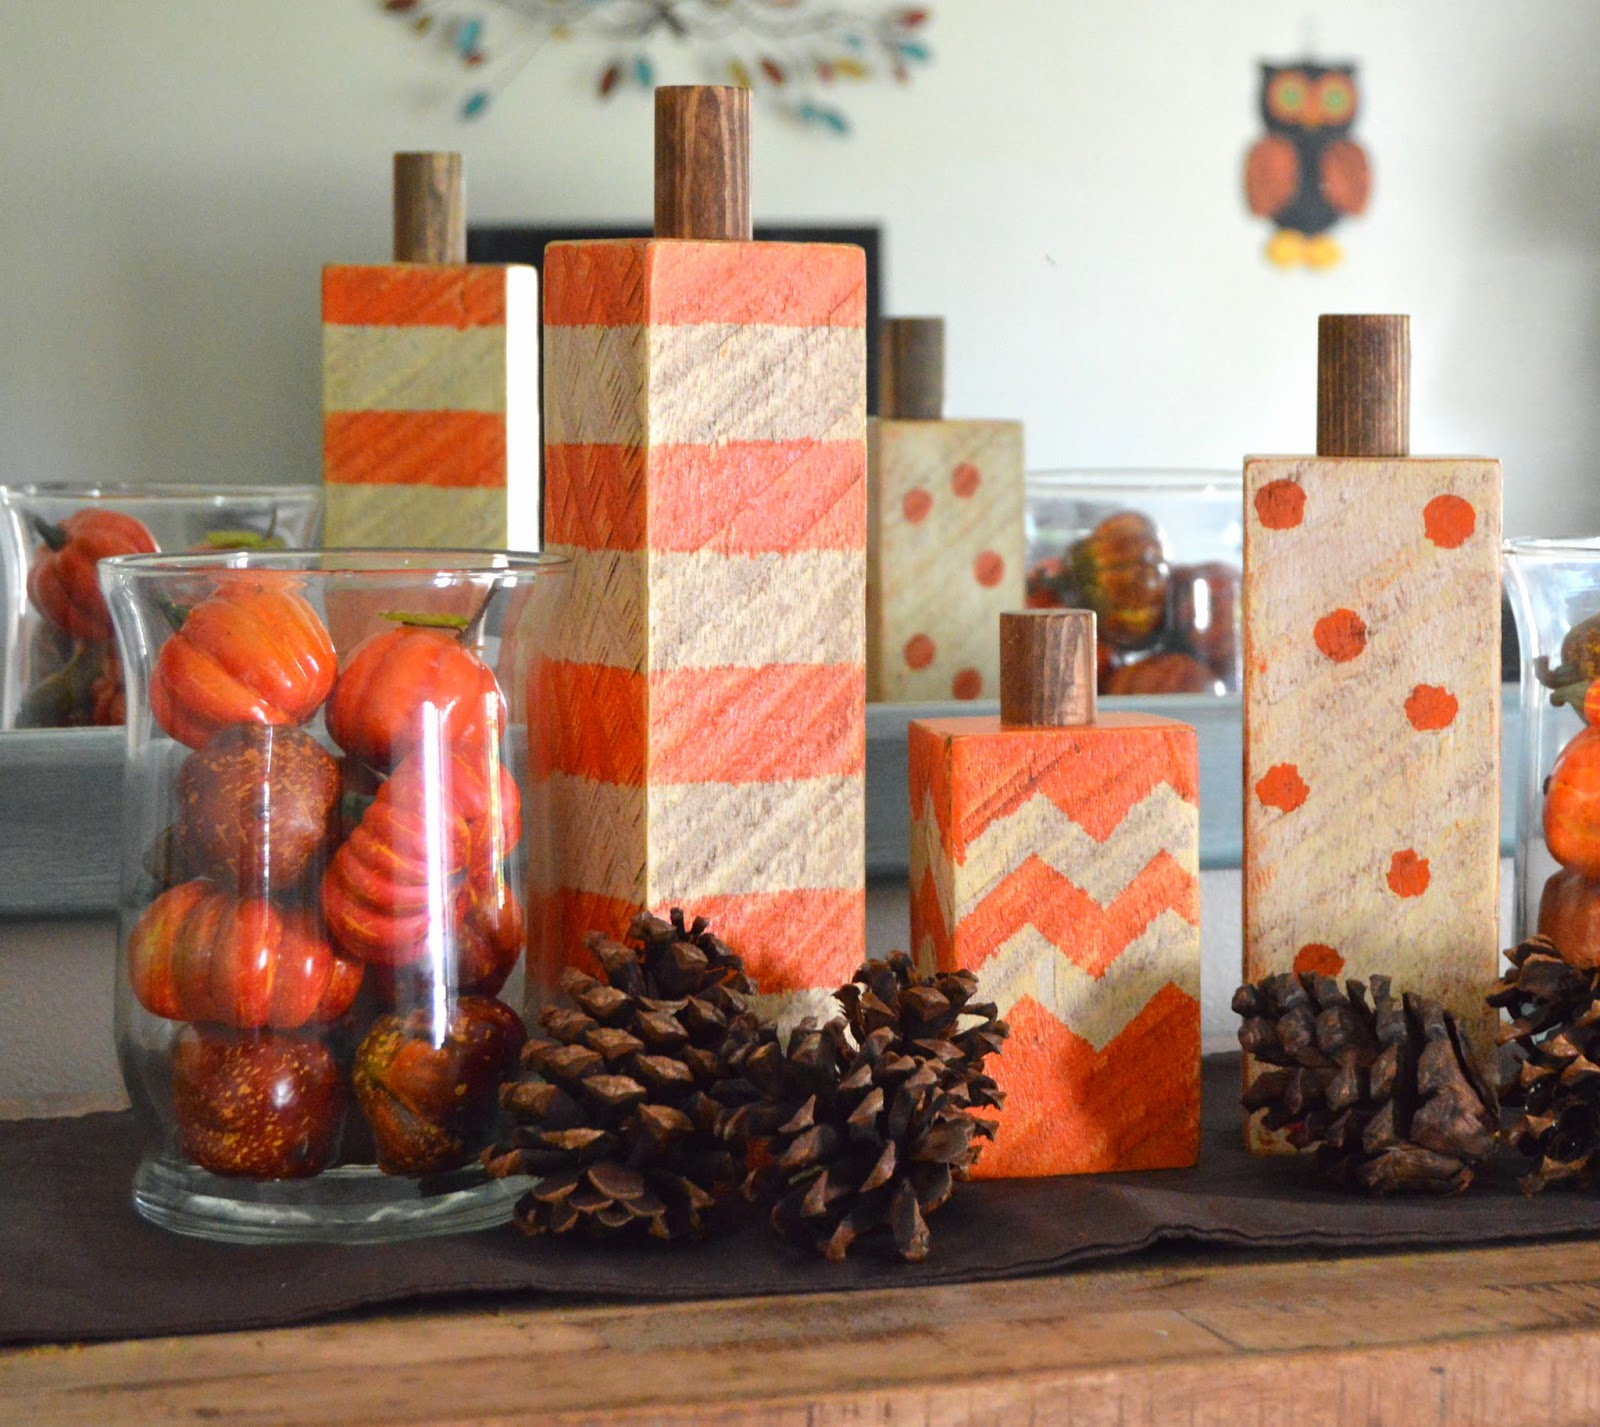 KRUSE'S WORKSHOP: Wood Block Pumpkins